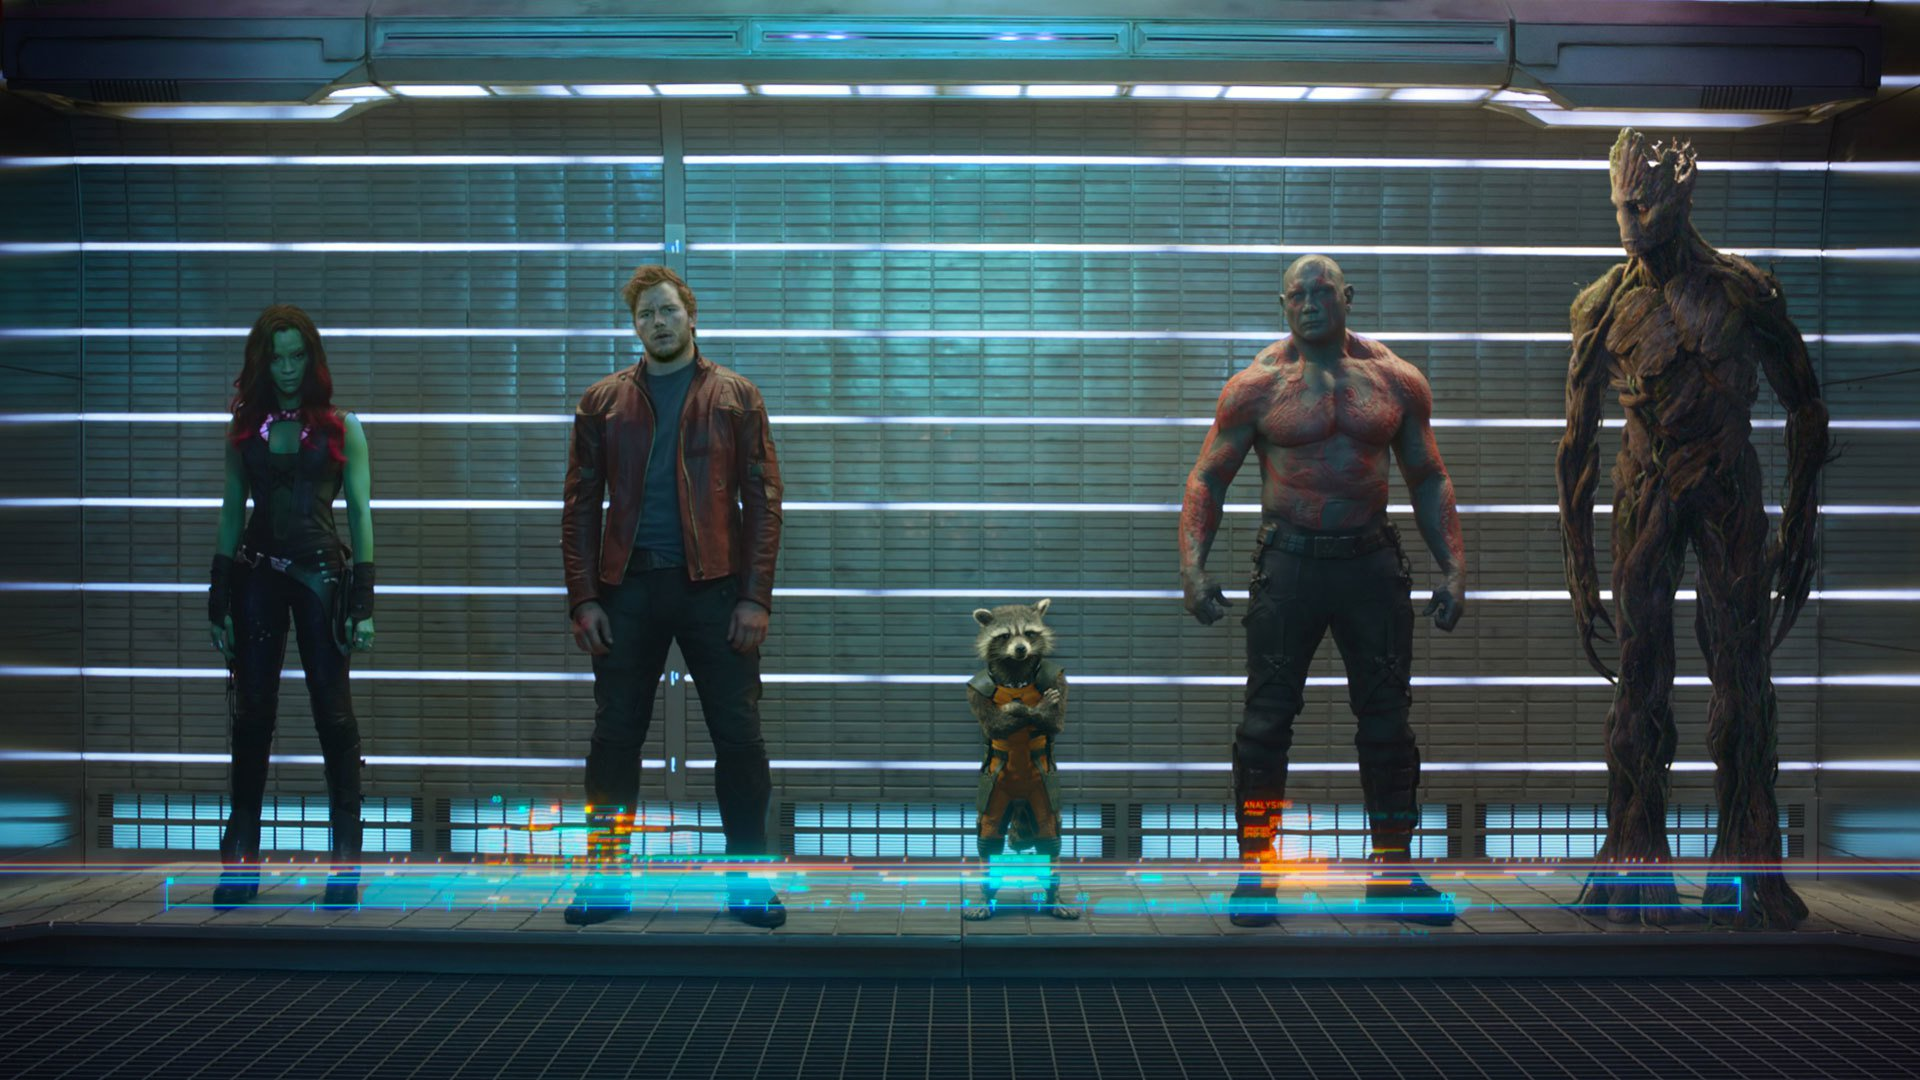 Guardians of the Galaxy backdrop